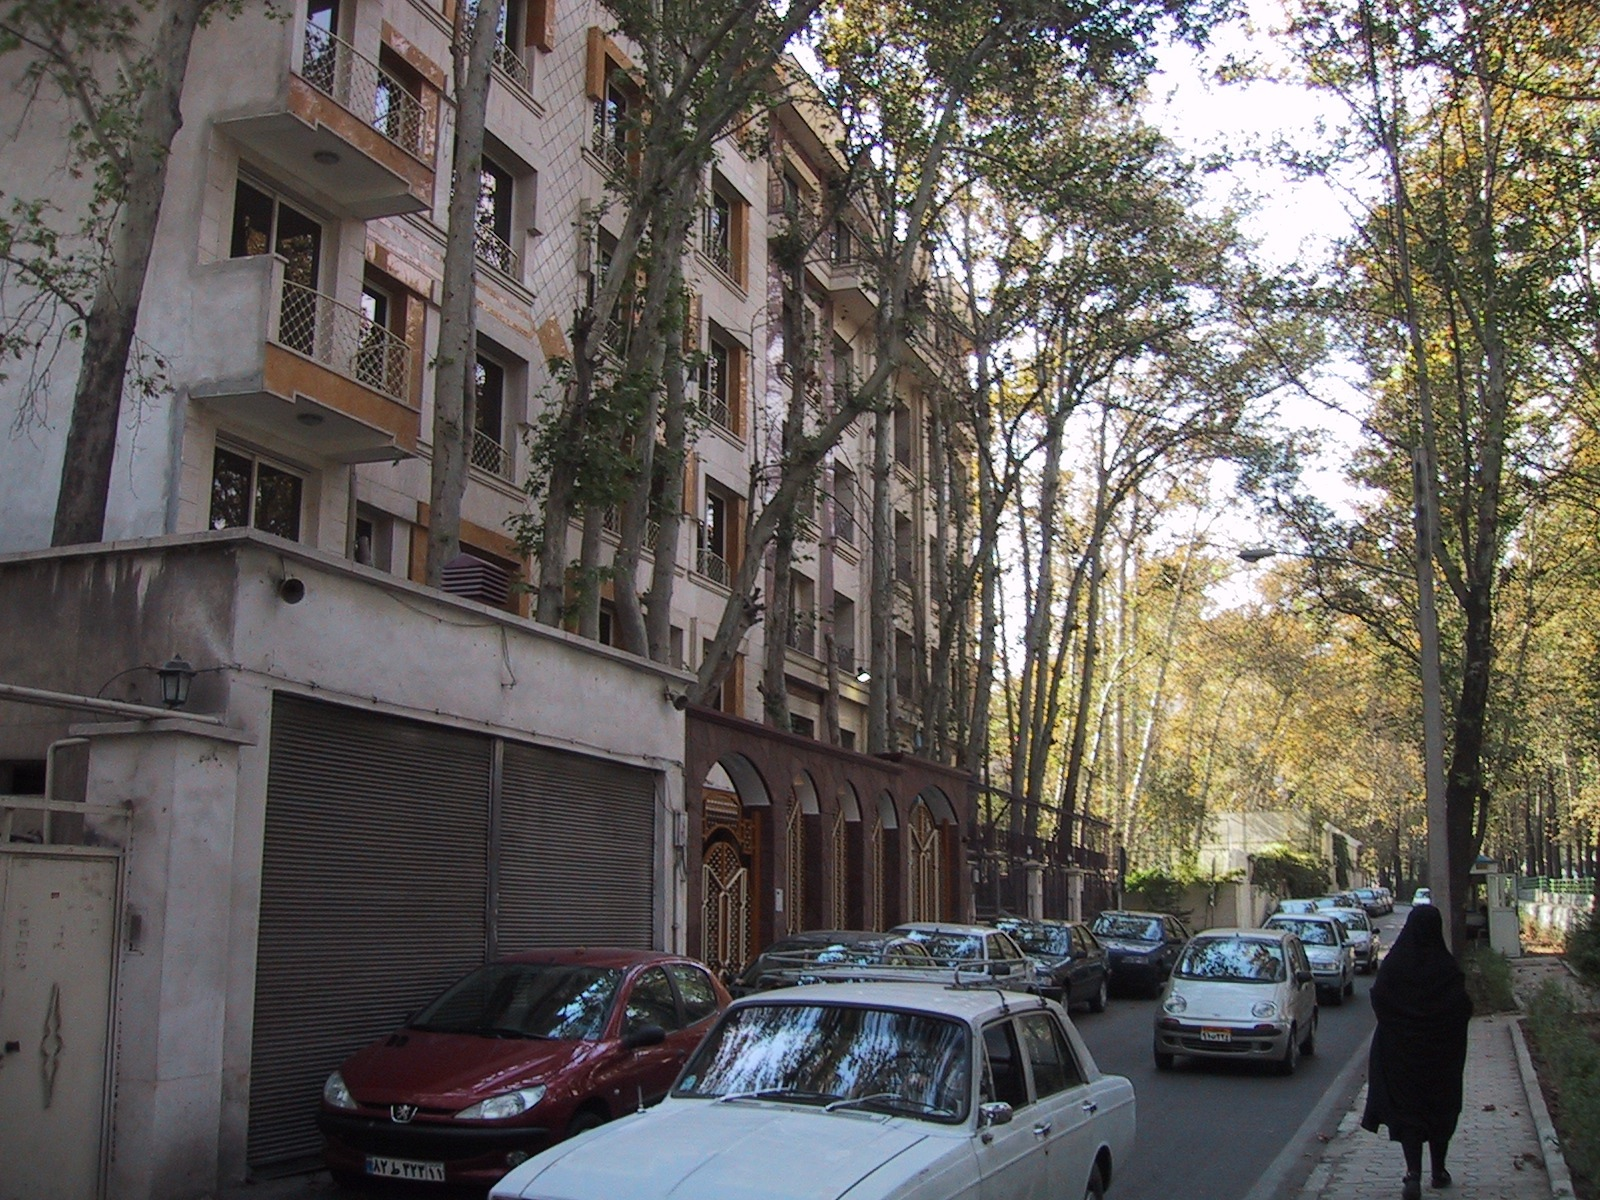 View down a residential street in Tehran